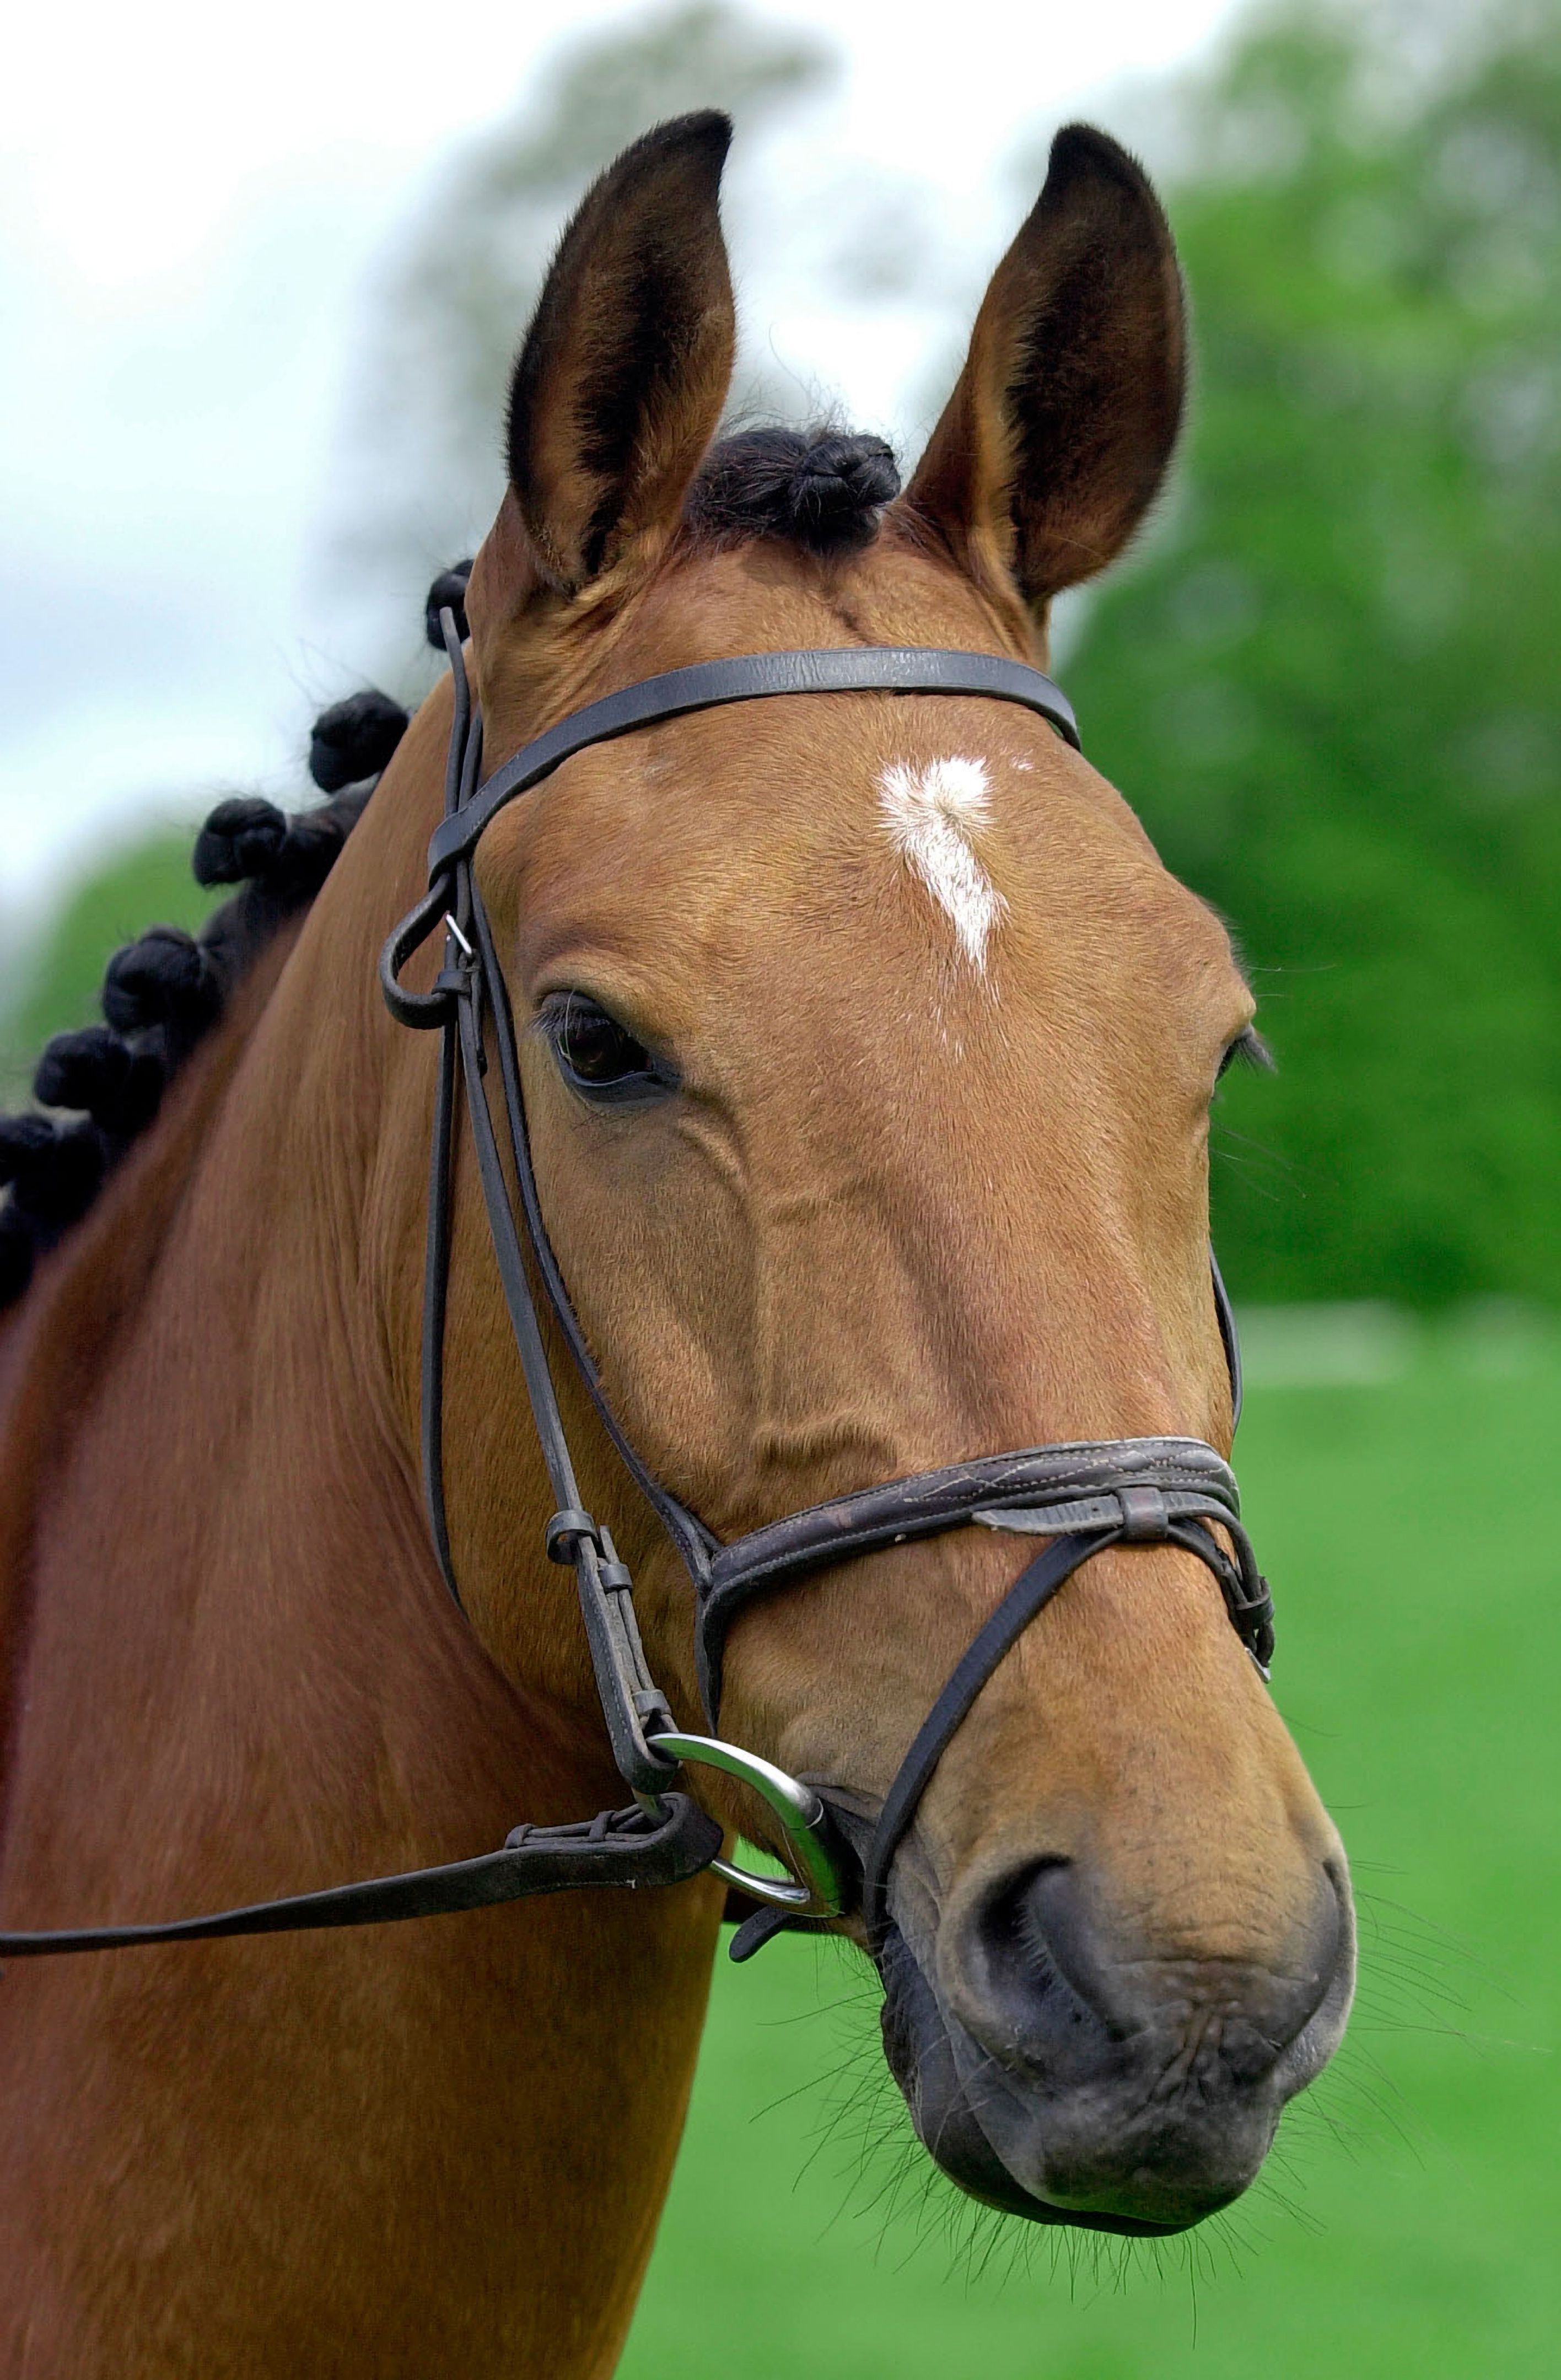 Cleveland Bay cross Thoroughbred